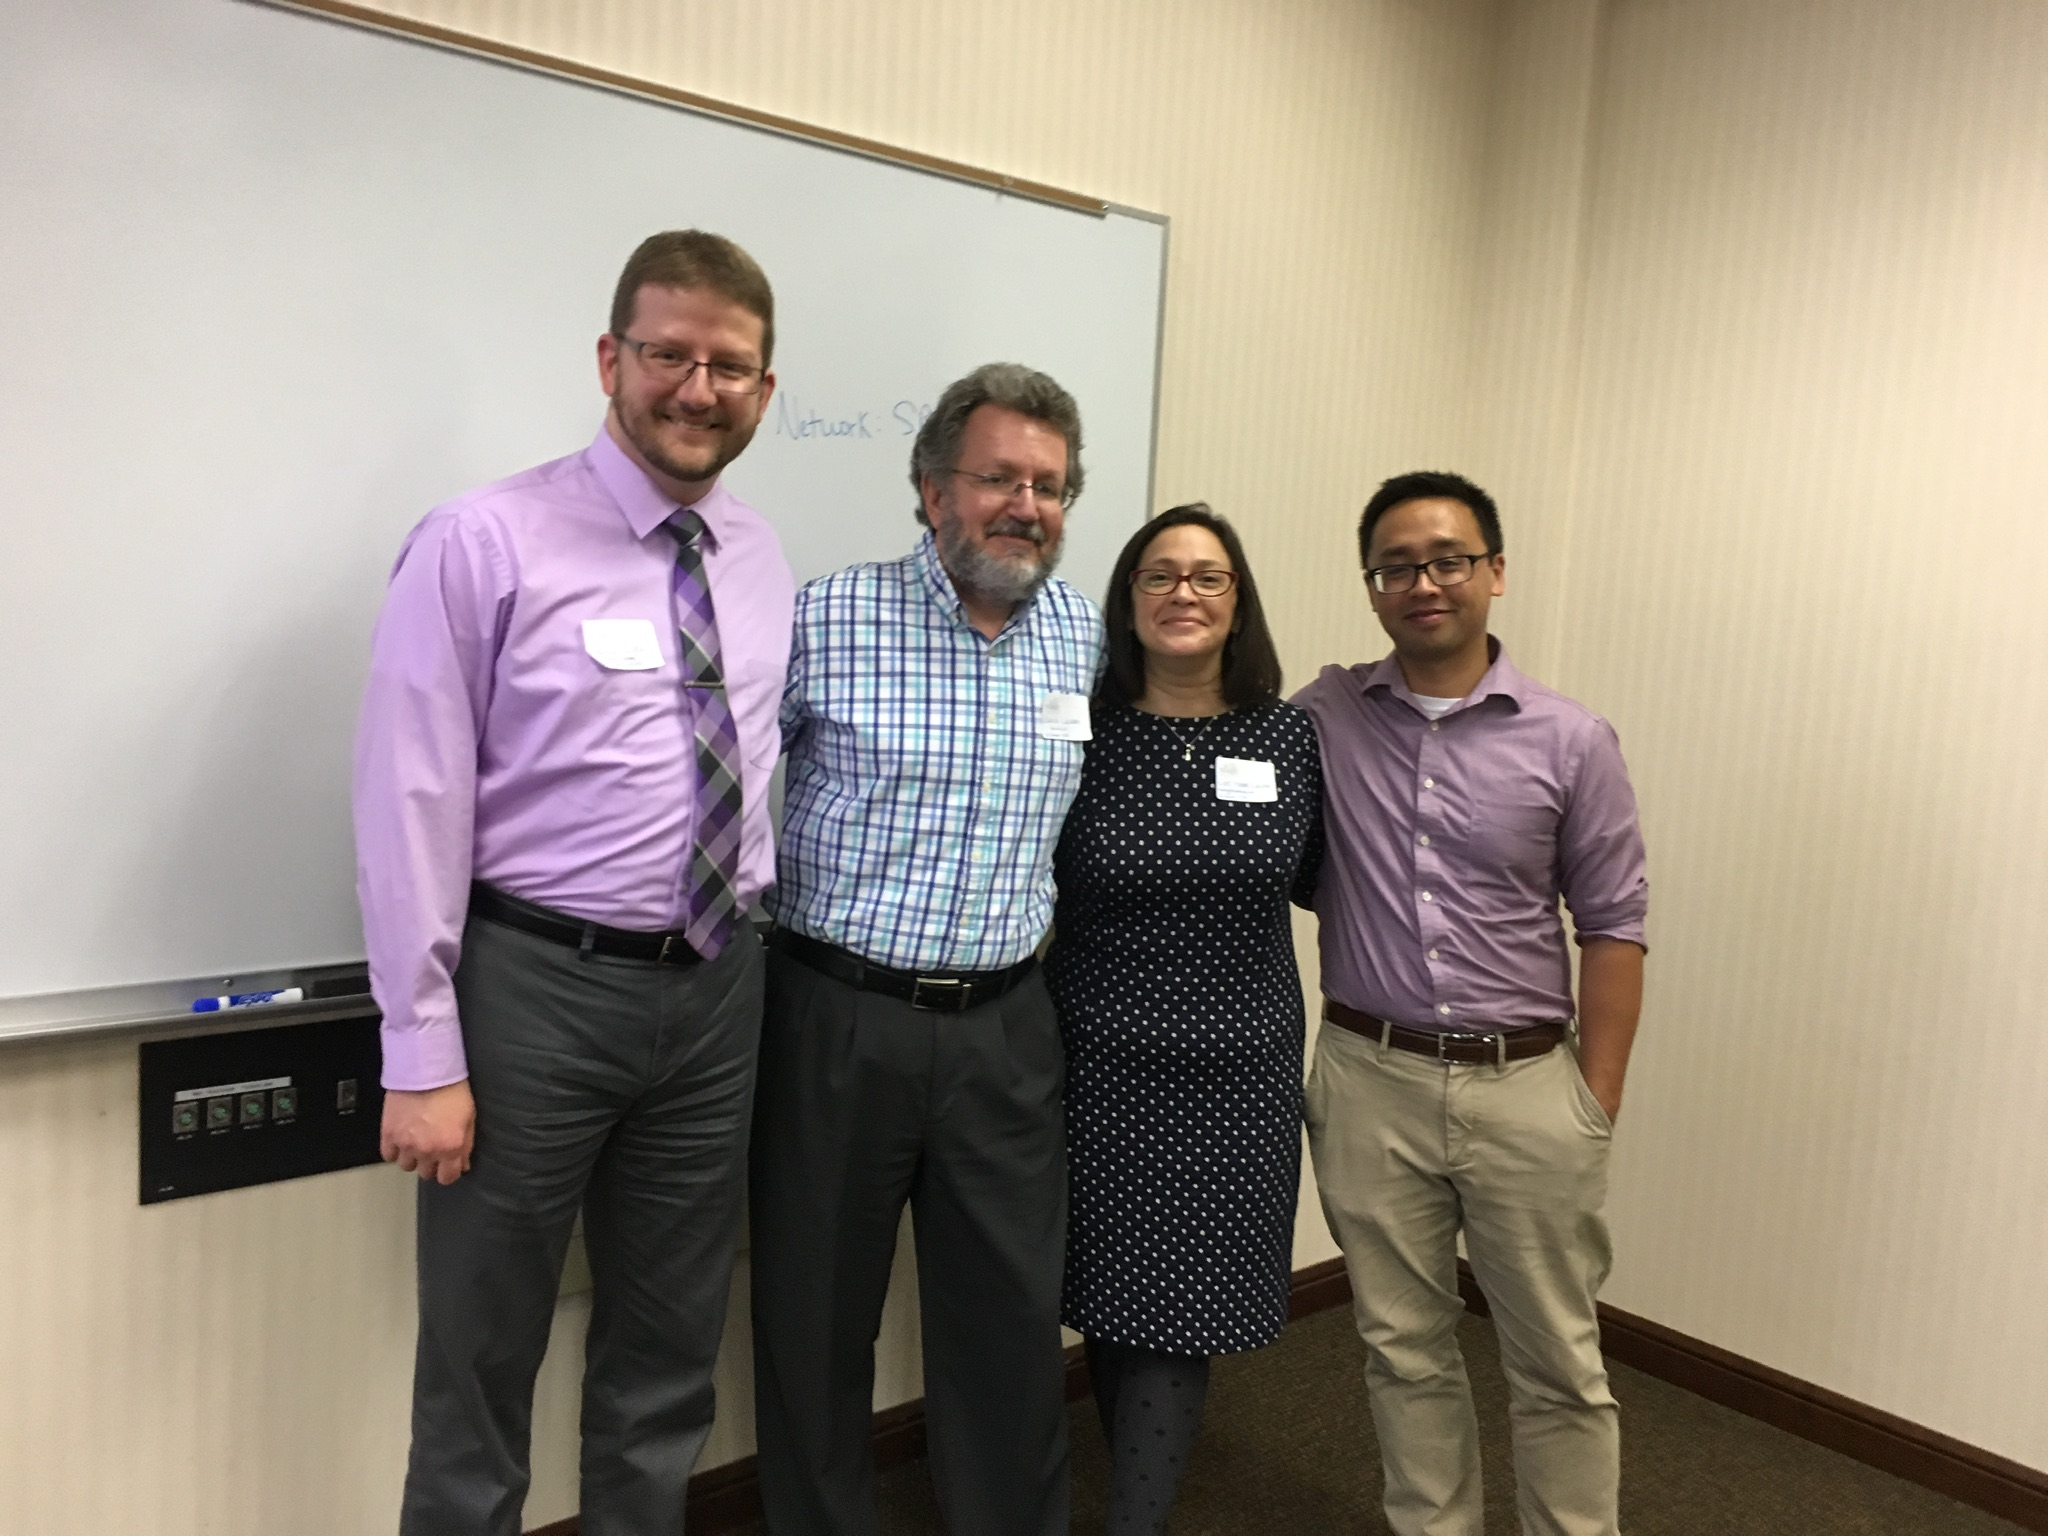 From Apra WI 2018 Fall Conference--St Norbert College--9-21-18.JPG